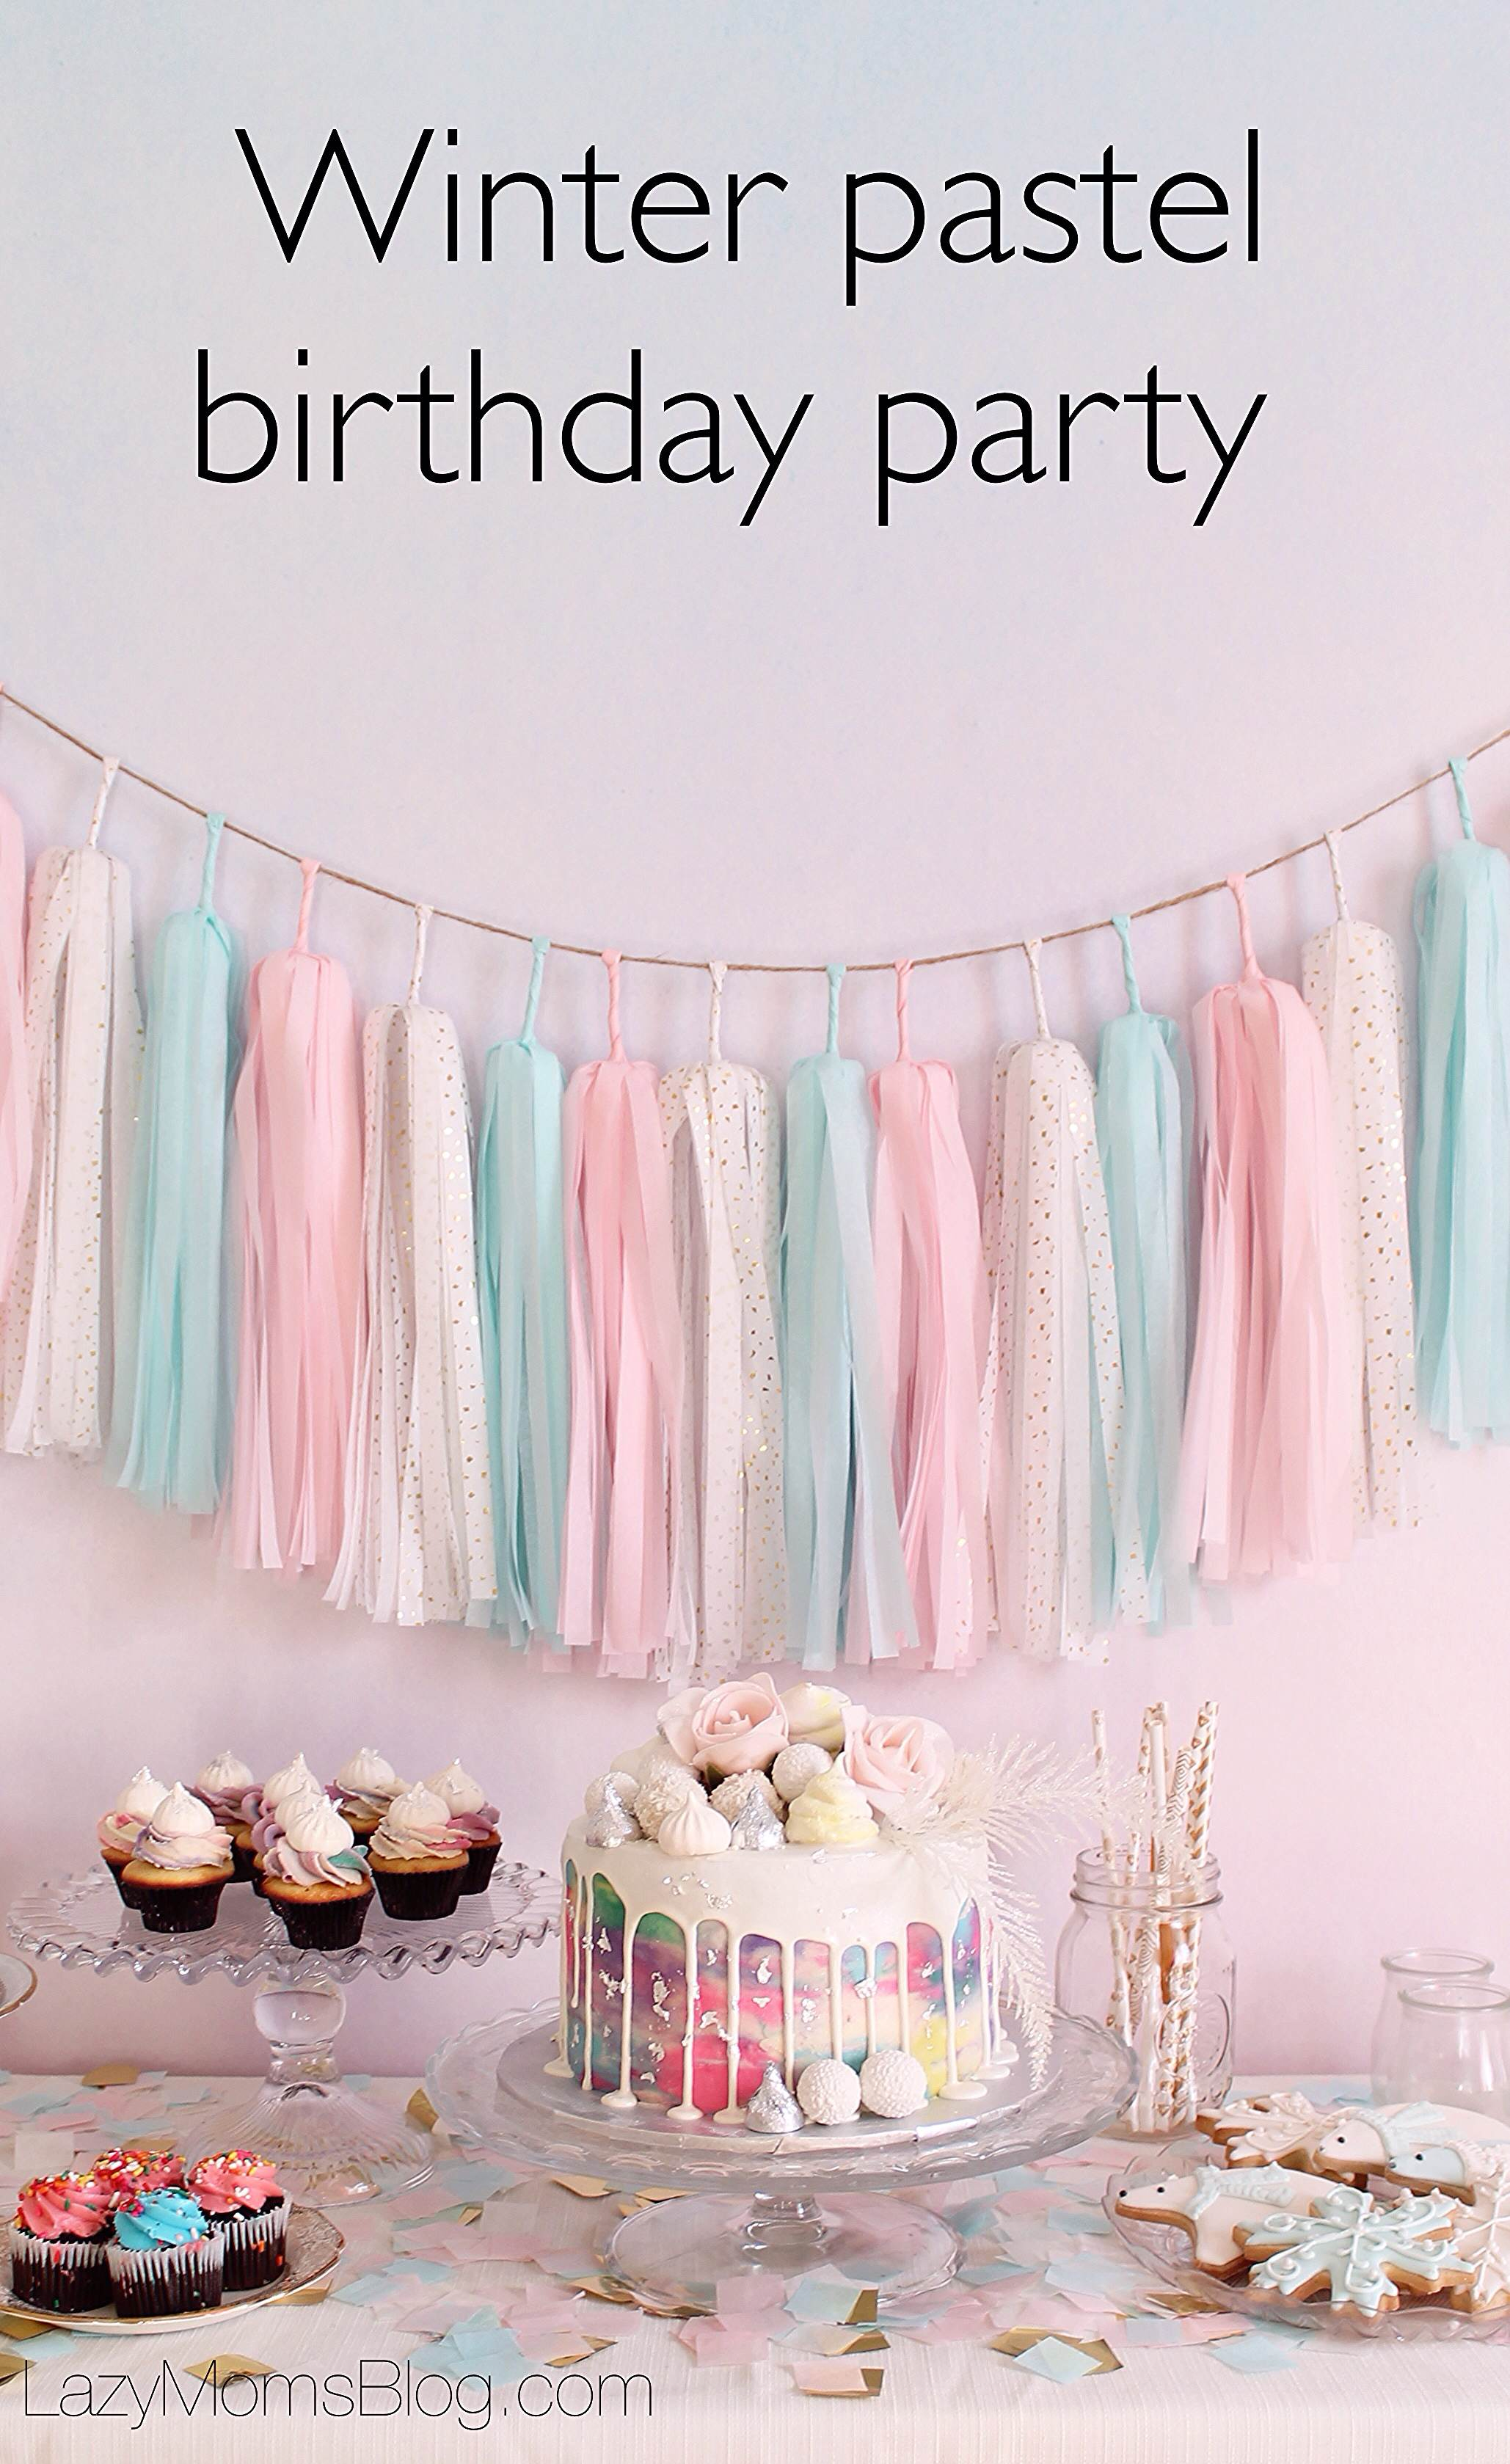 Winter pastel birthday party , ideas and tips for busy moms!